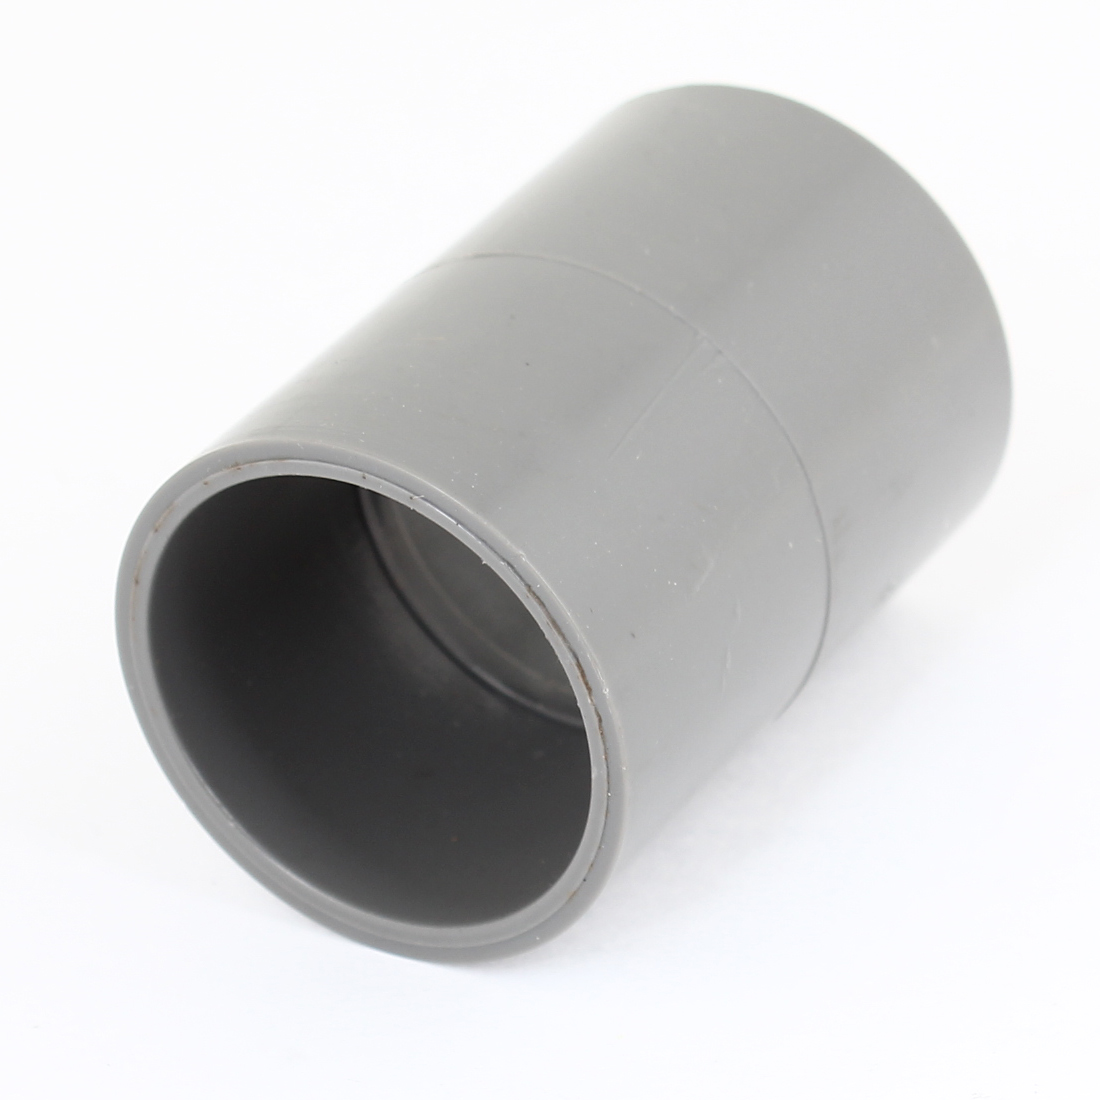 "Gray 32mm 1.26"" Inner Diameter PVC Drainage Straight Pipe Connector"